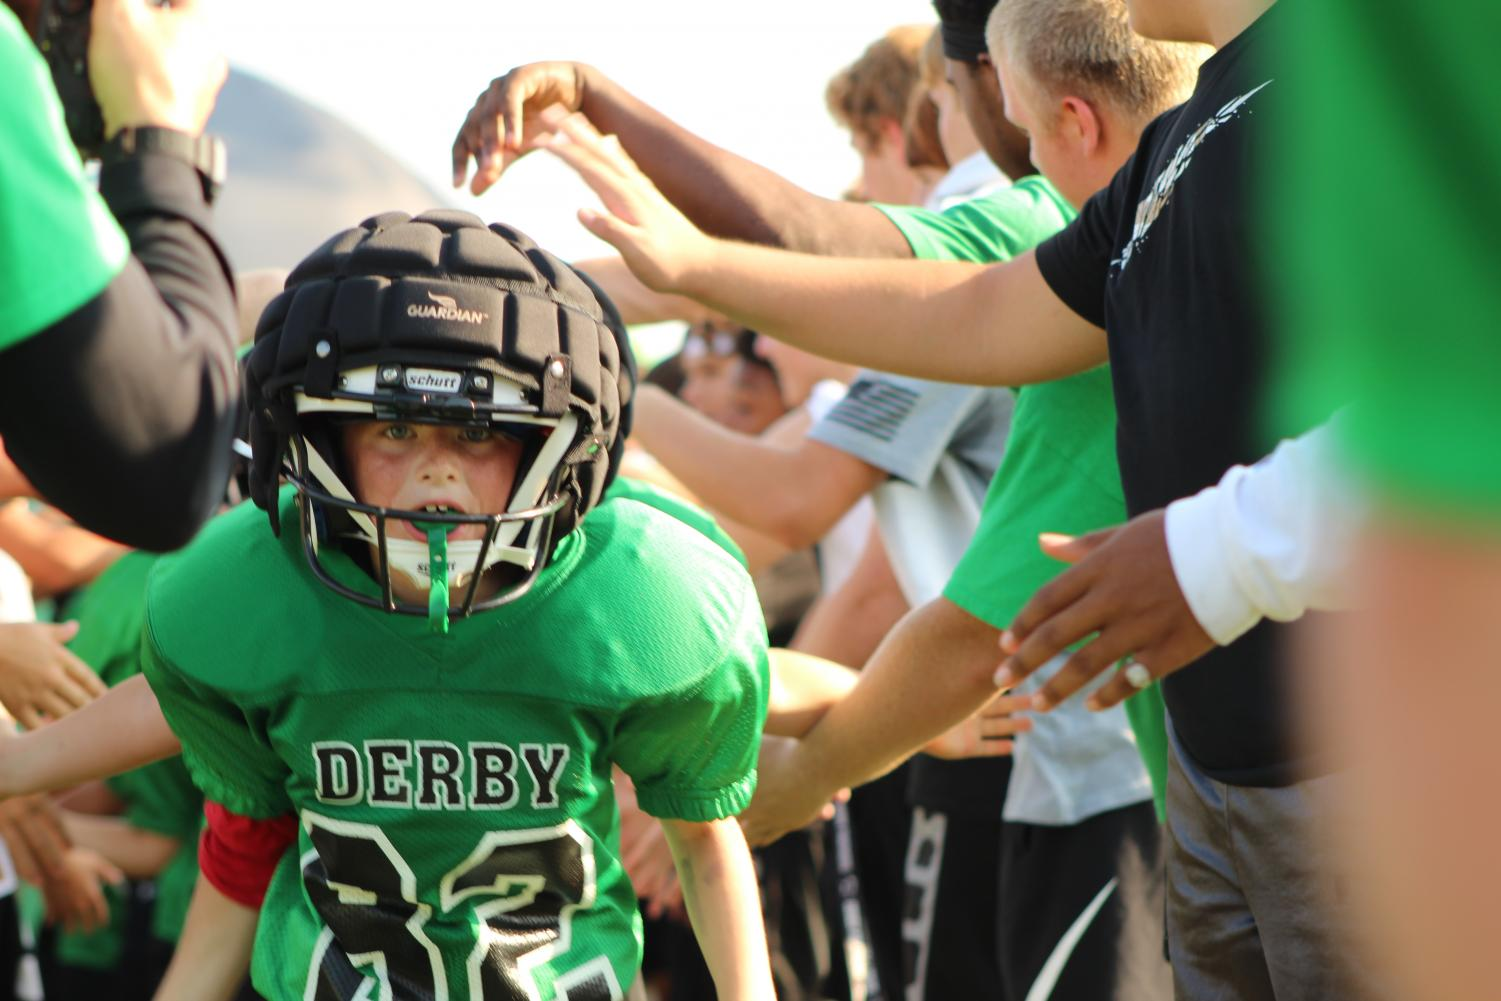 Derby Jr. Football kids run through the tunnel to mark the beginning of their game.